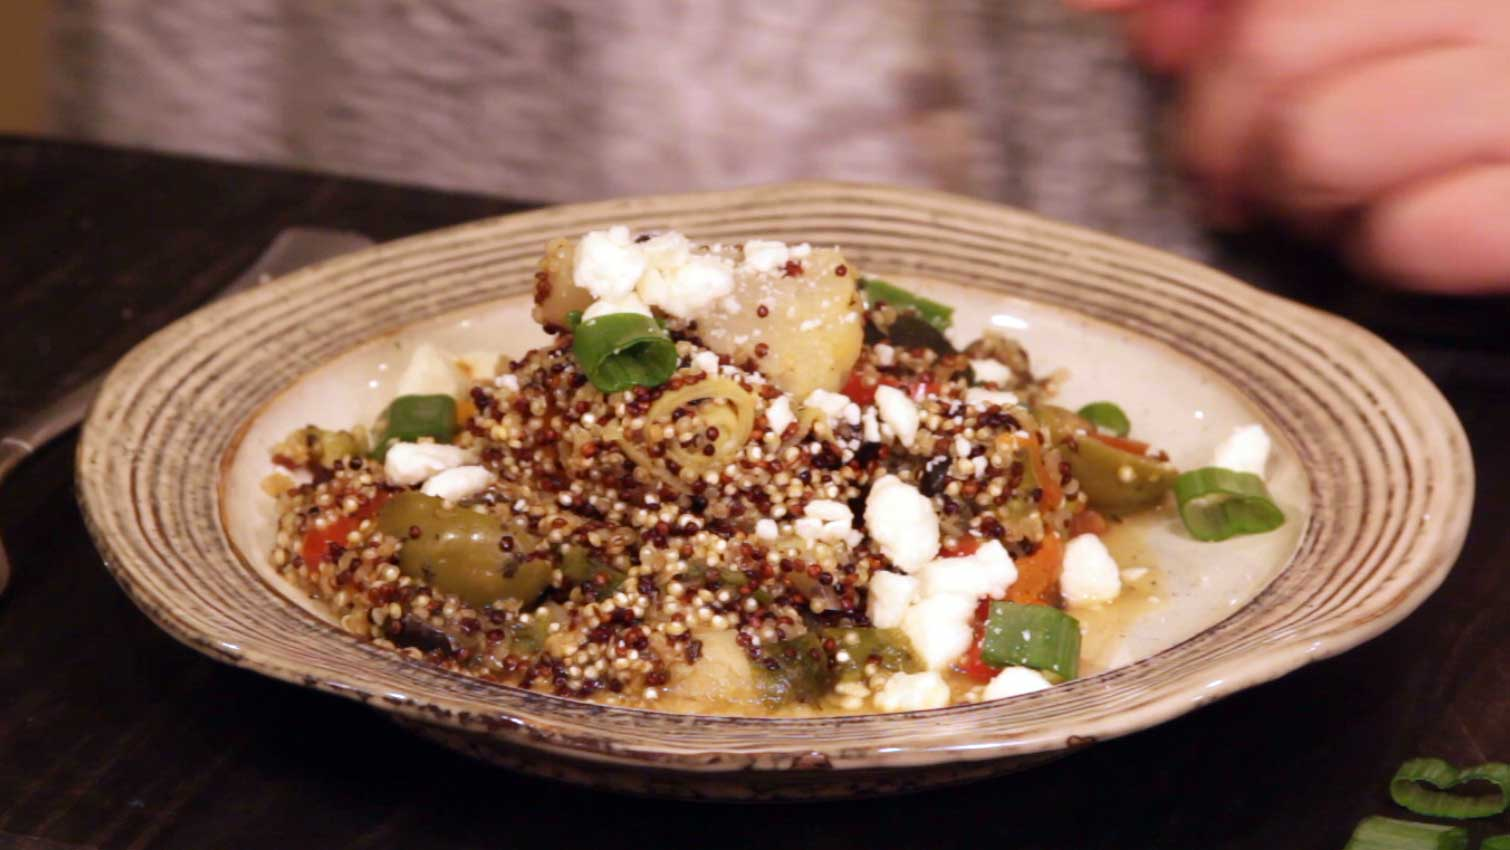 Plated Quinoa with vegetables with garnish of green onions and feta